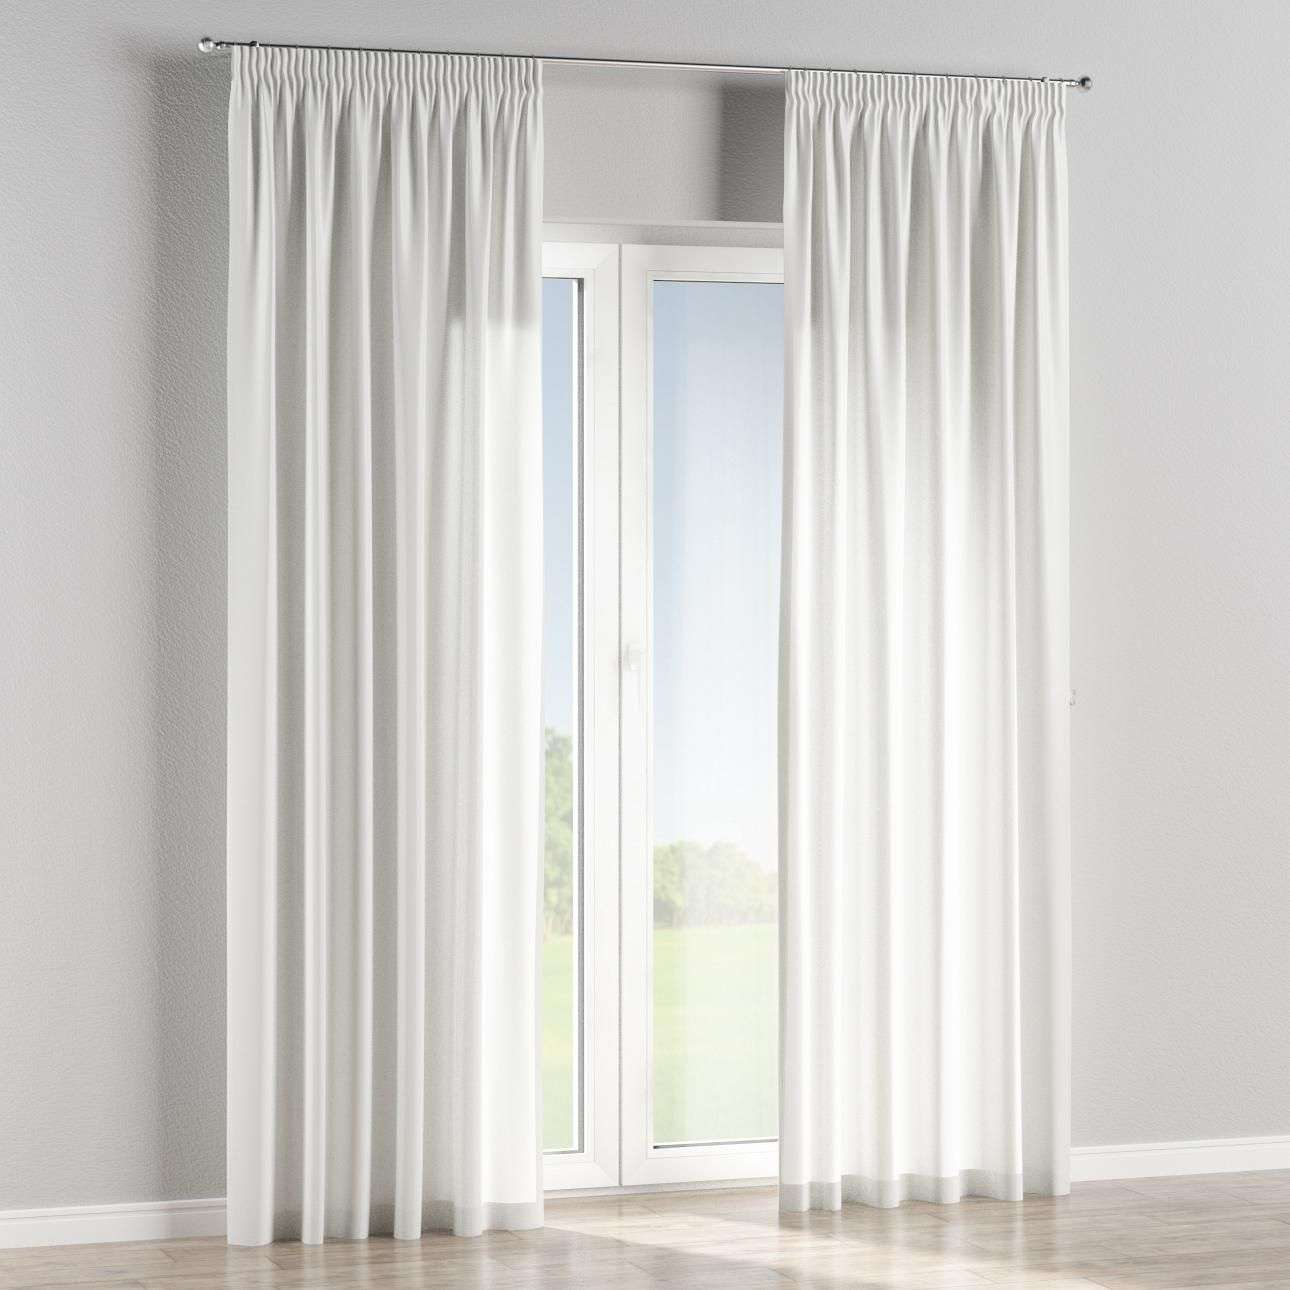 Pencil pleat lined curtains in collection Norge, fabric: 140-93